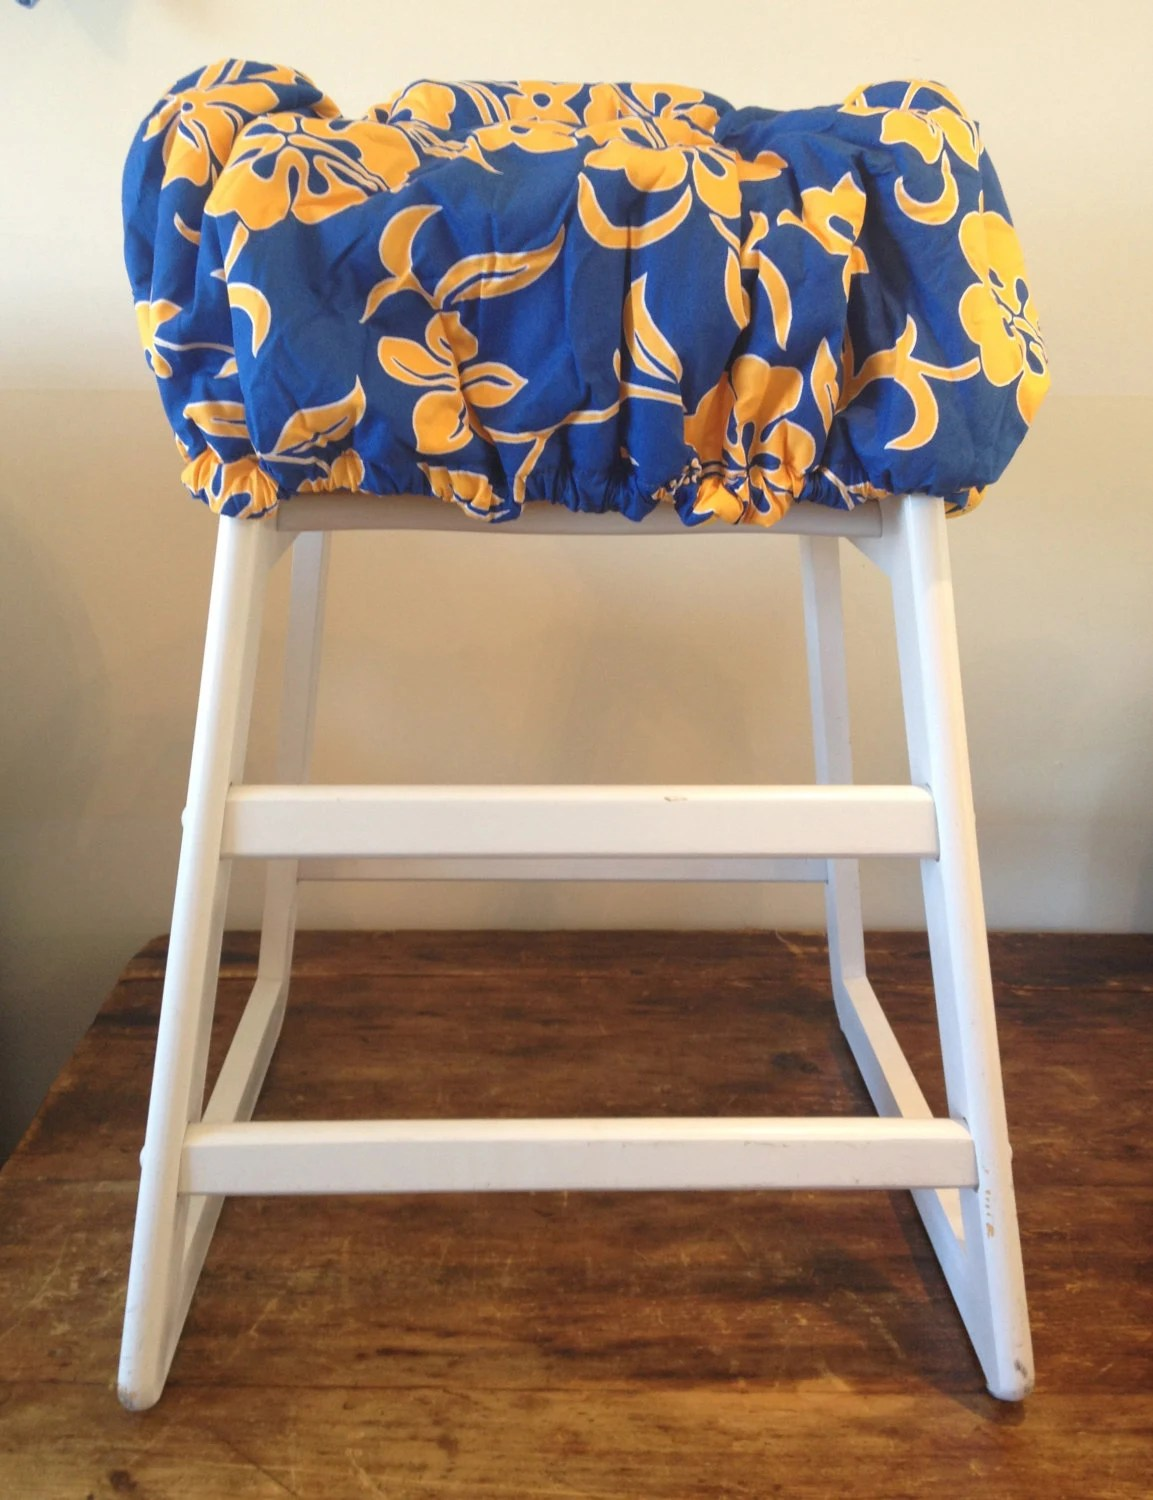 High Chair Covers Hula Moon High Chair Cover Shopping Cart Cover In Blue And Gold